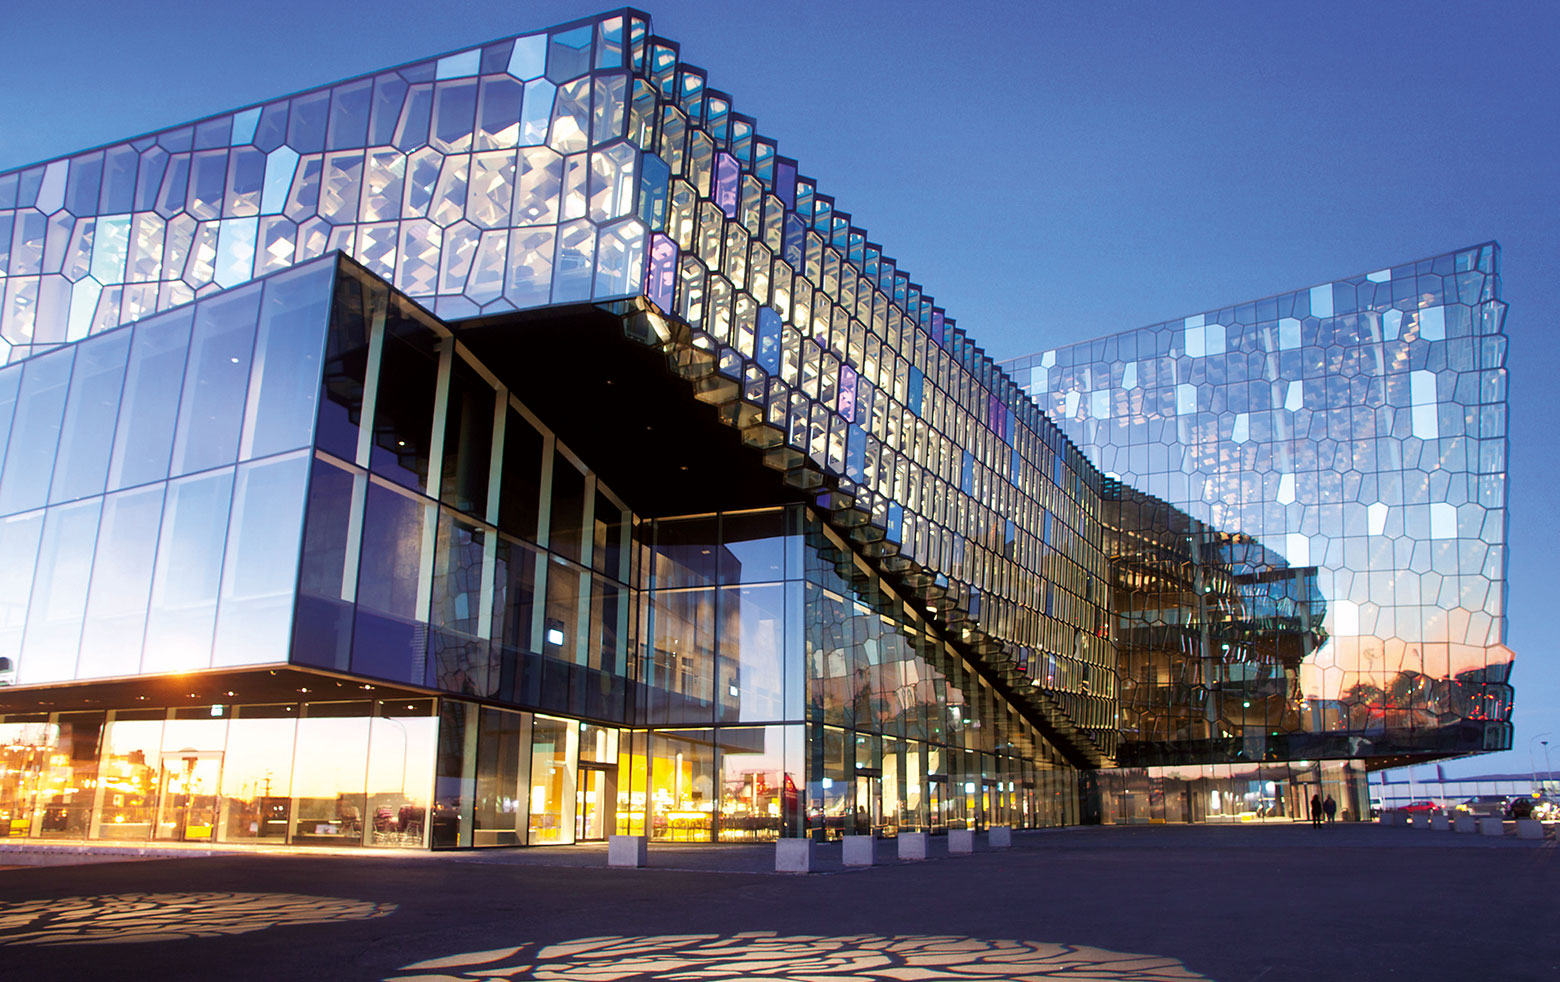 Dichroic glass is accentuating the HARPA facade